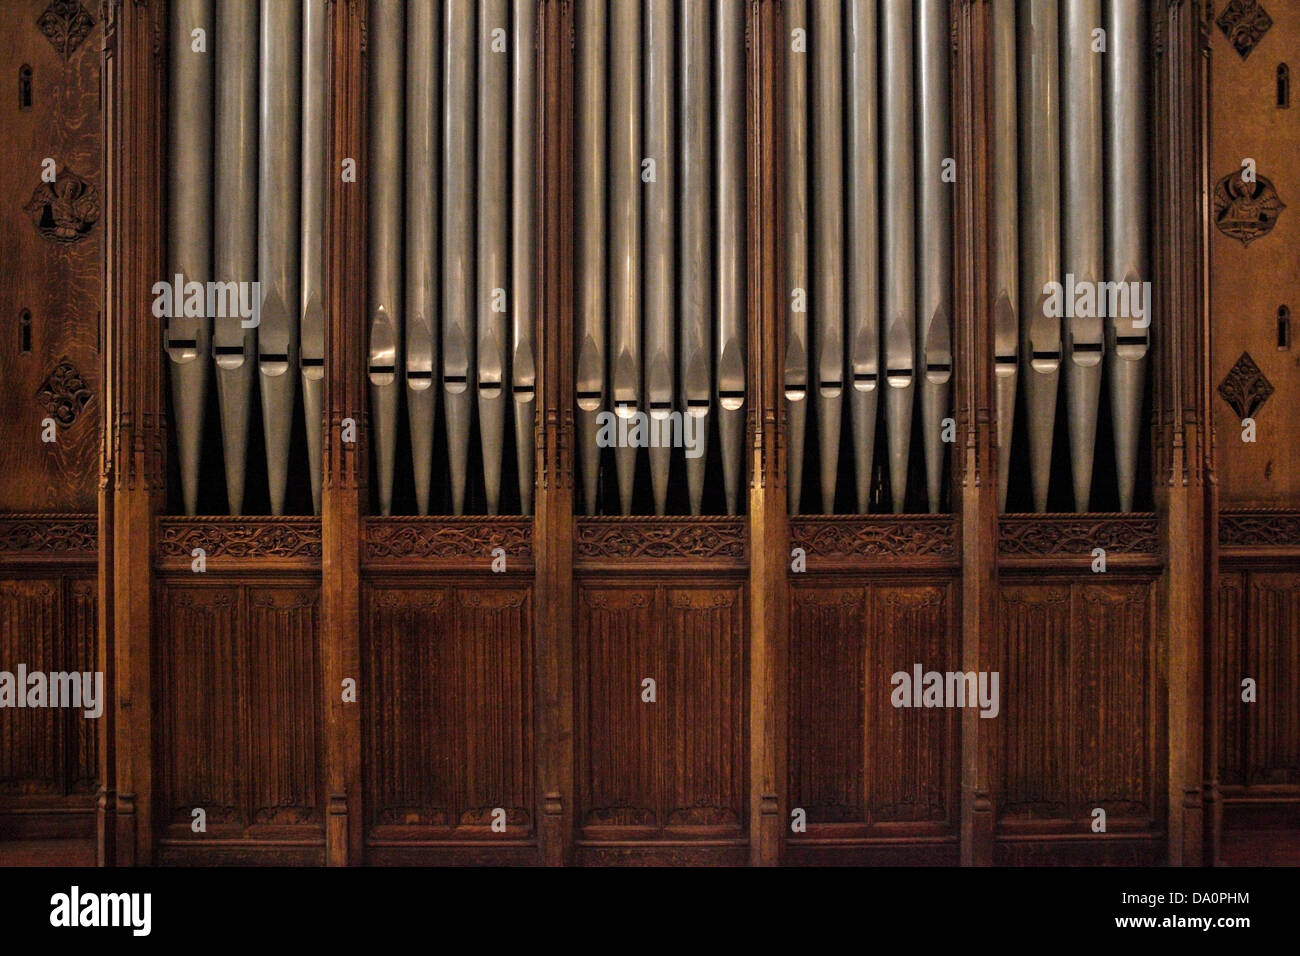 Pipes of a pipe organ in a church - Stock Image